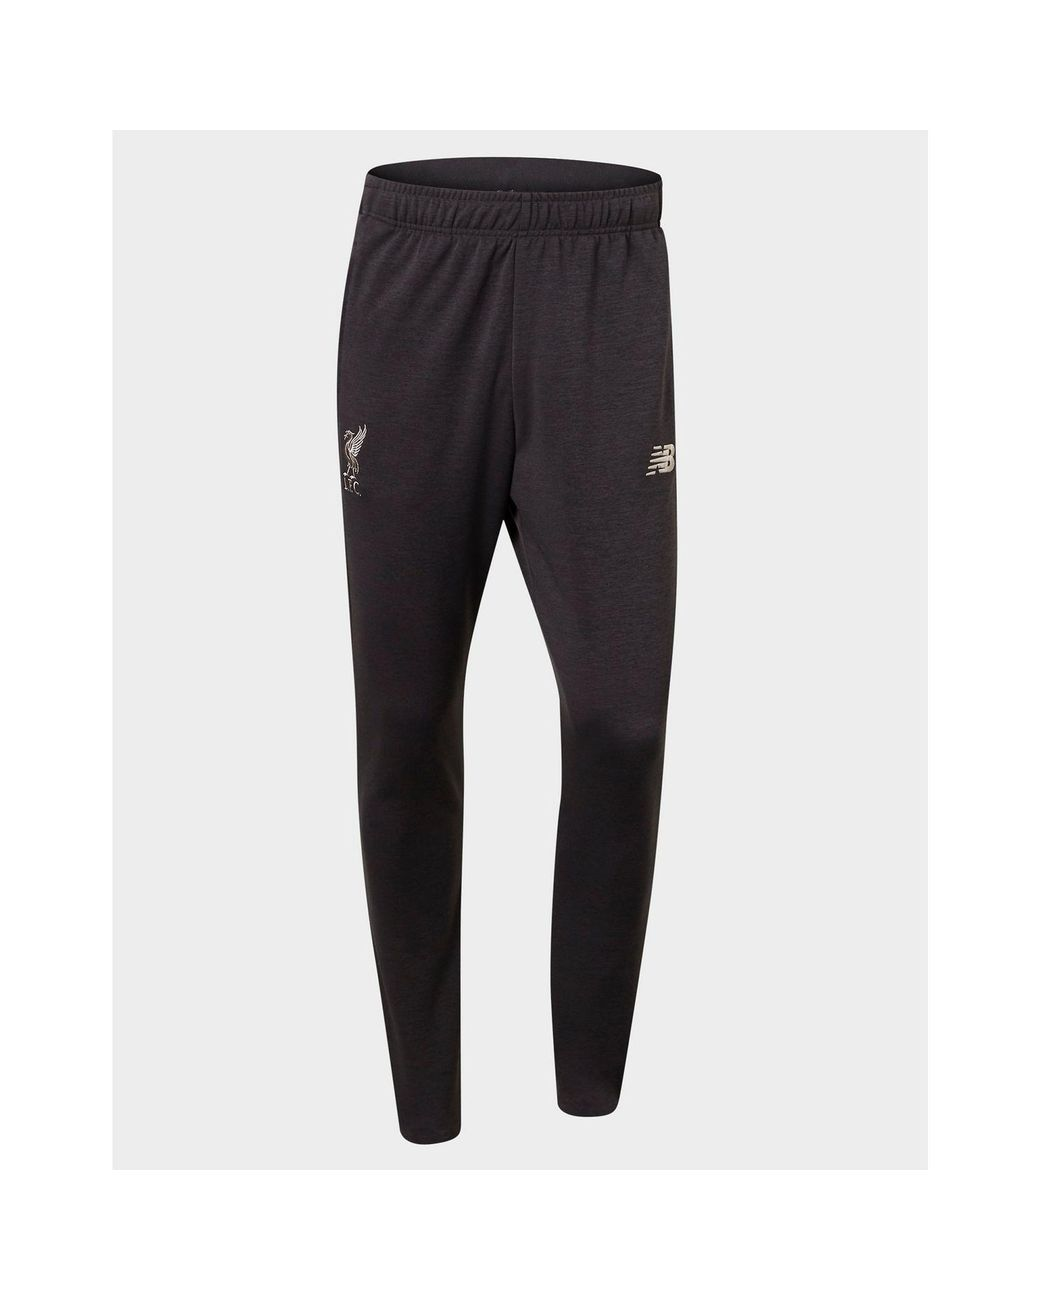 f97058bb81285 New Balance Liverpool Fc Travel Joggers in Black for Men - Lyst